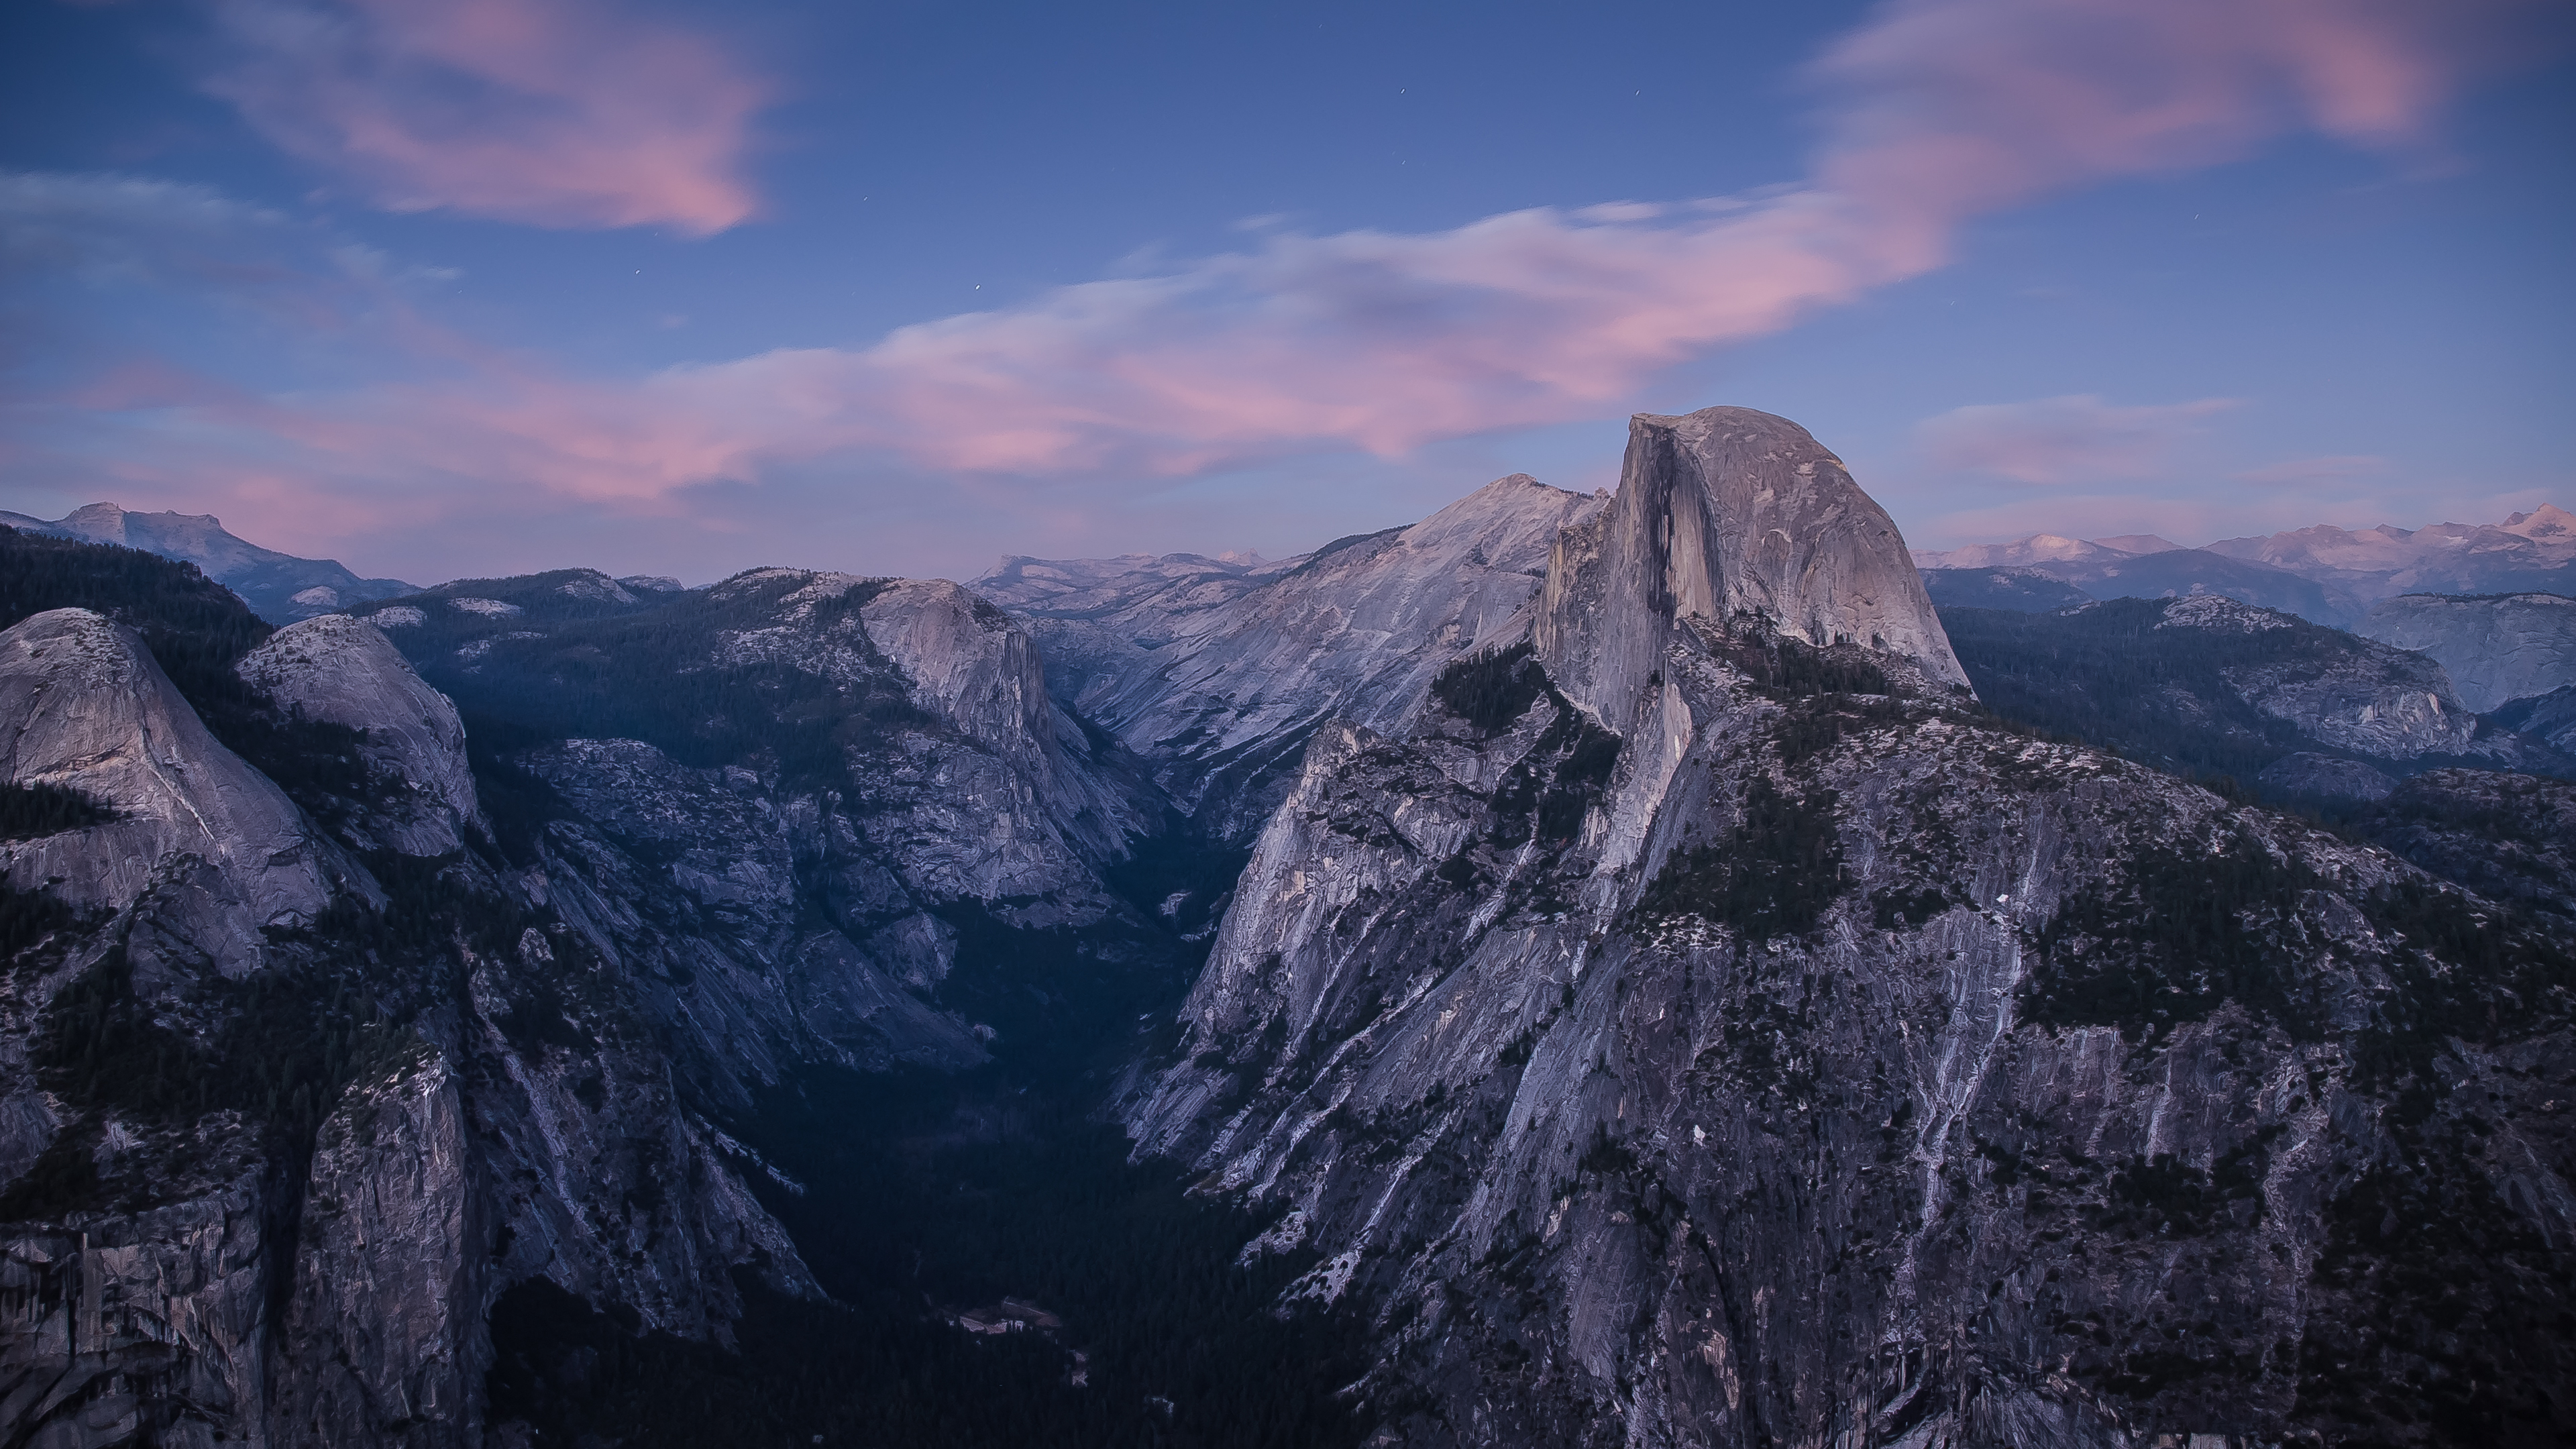 4k yosemite wallpaper wallpapersafari for Wallpaper home 4k